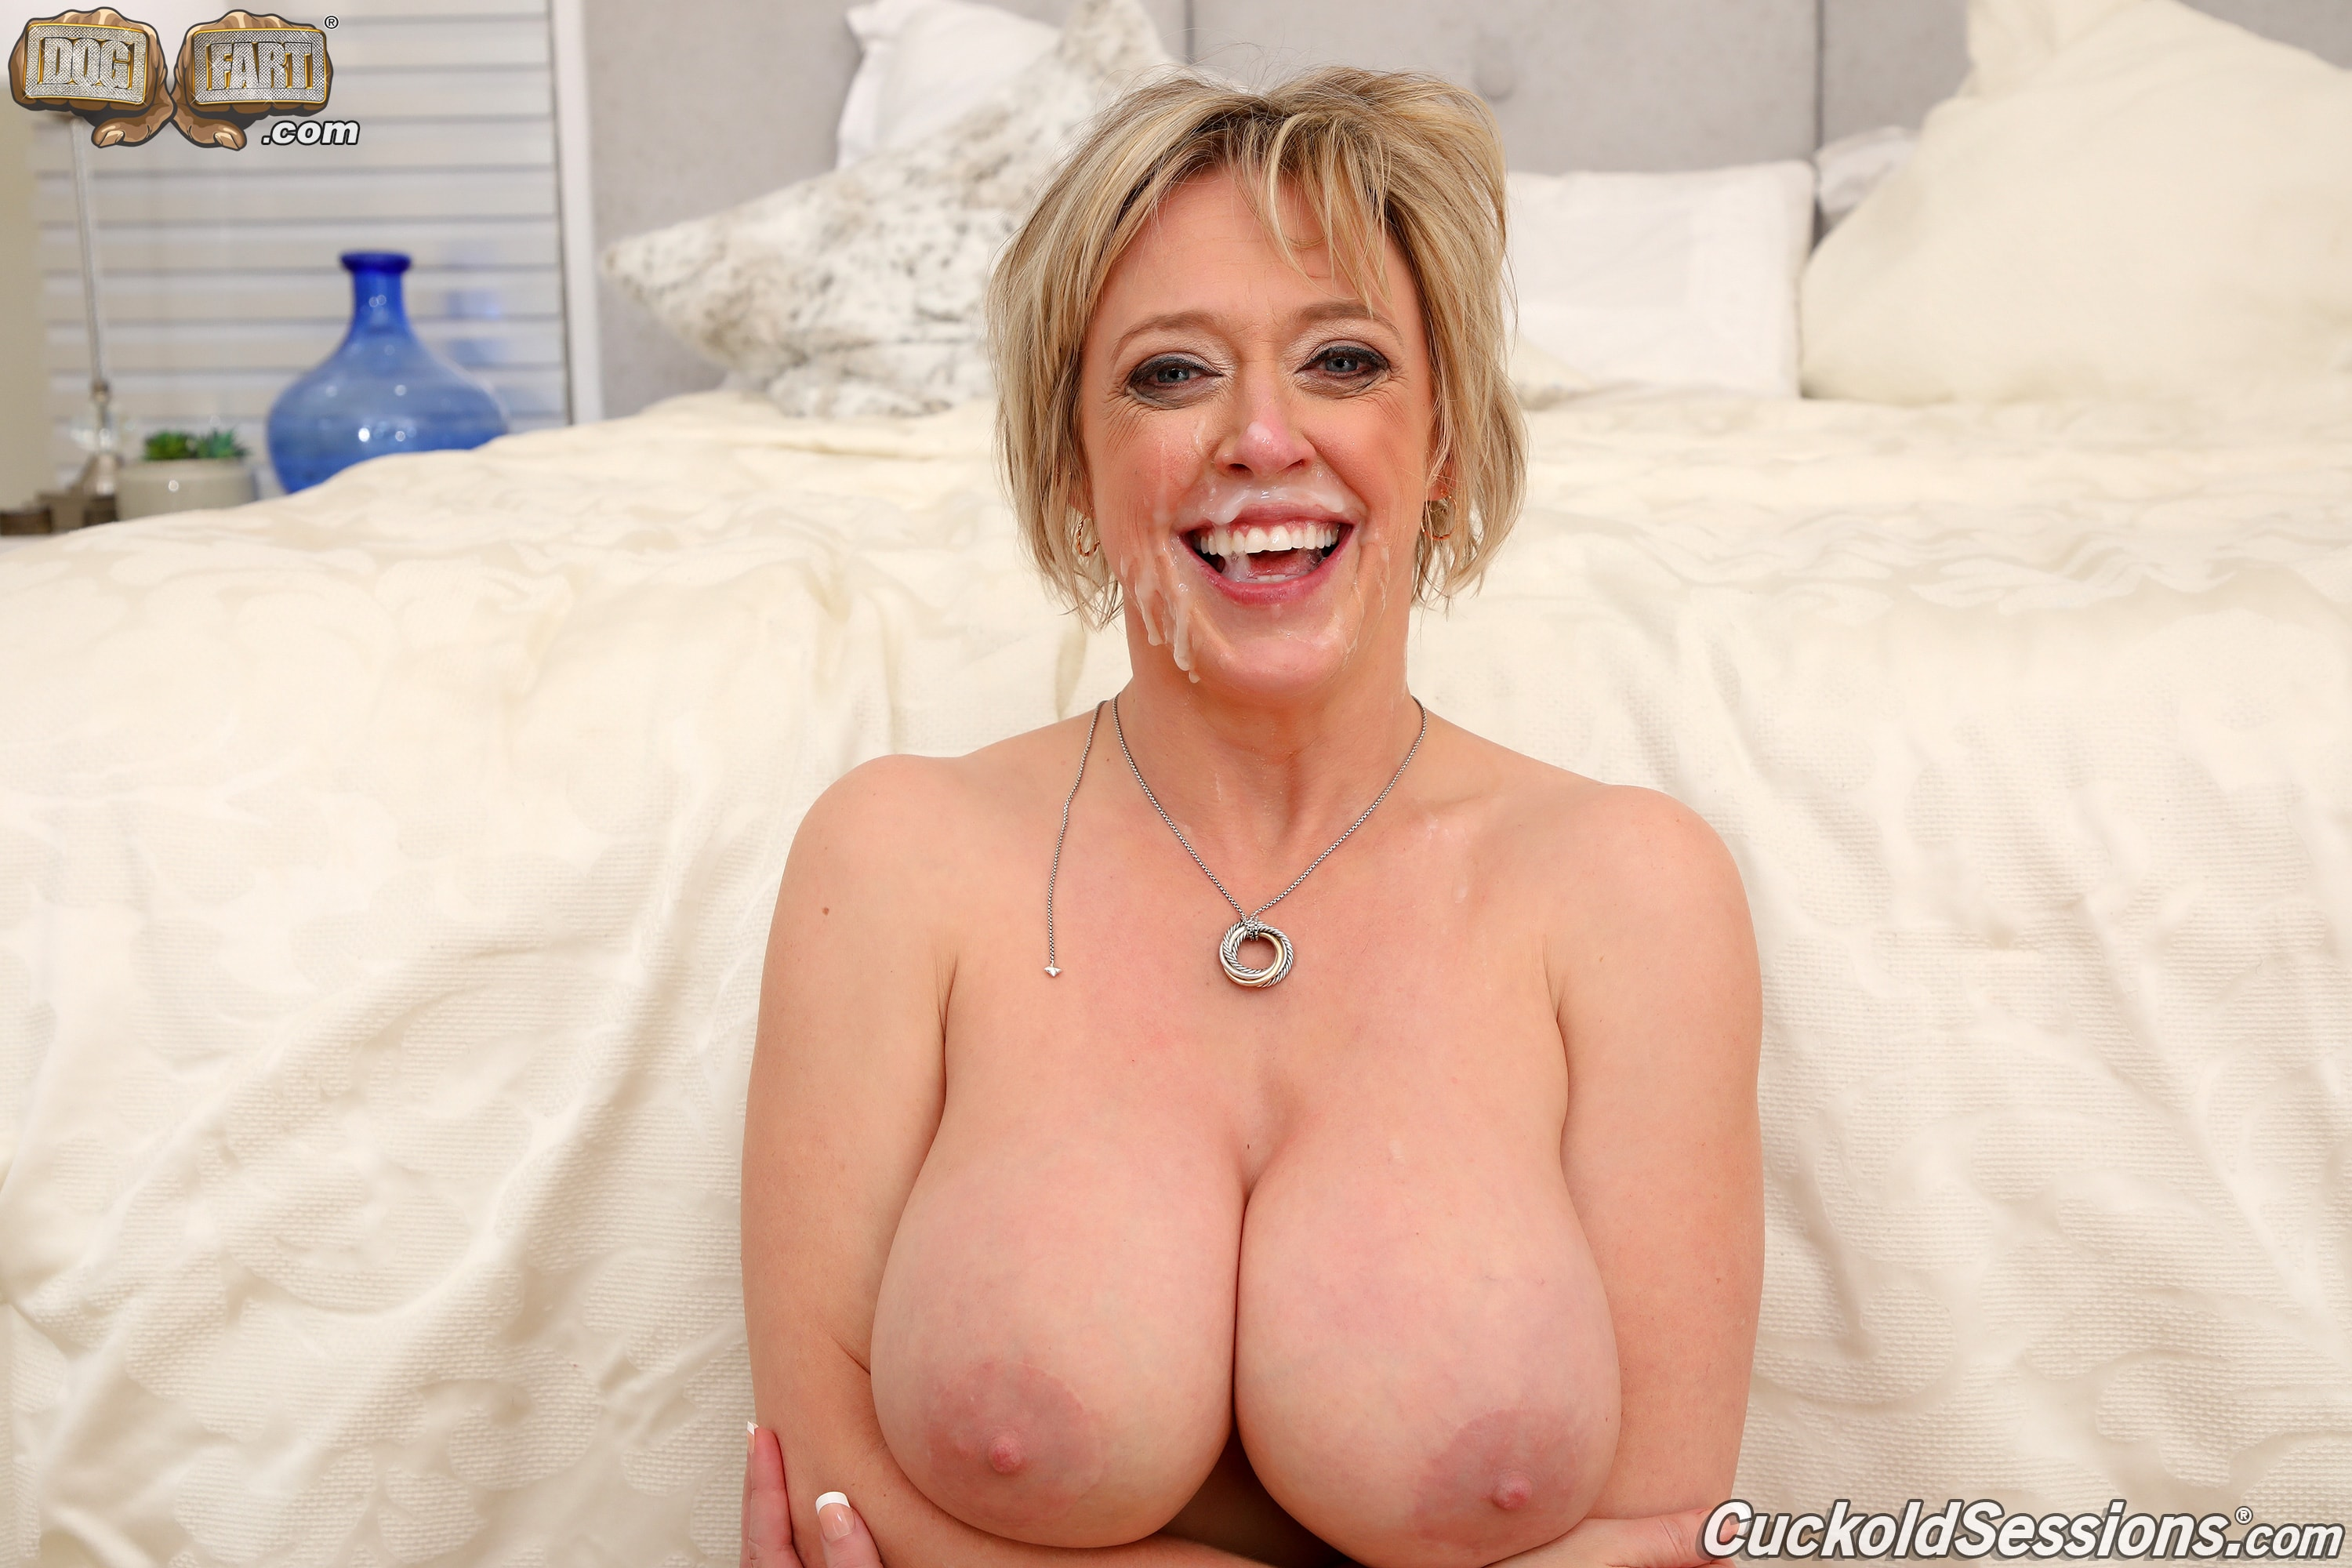 Dogfart '- Cuckold Sessions' starring Dee Williams (Photo 27)